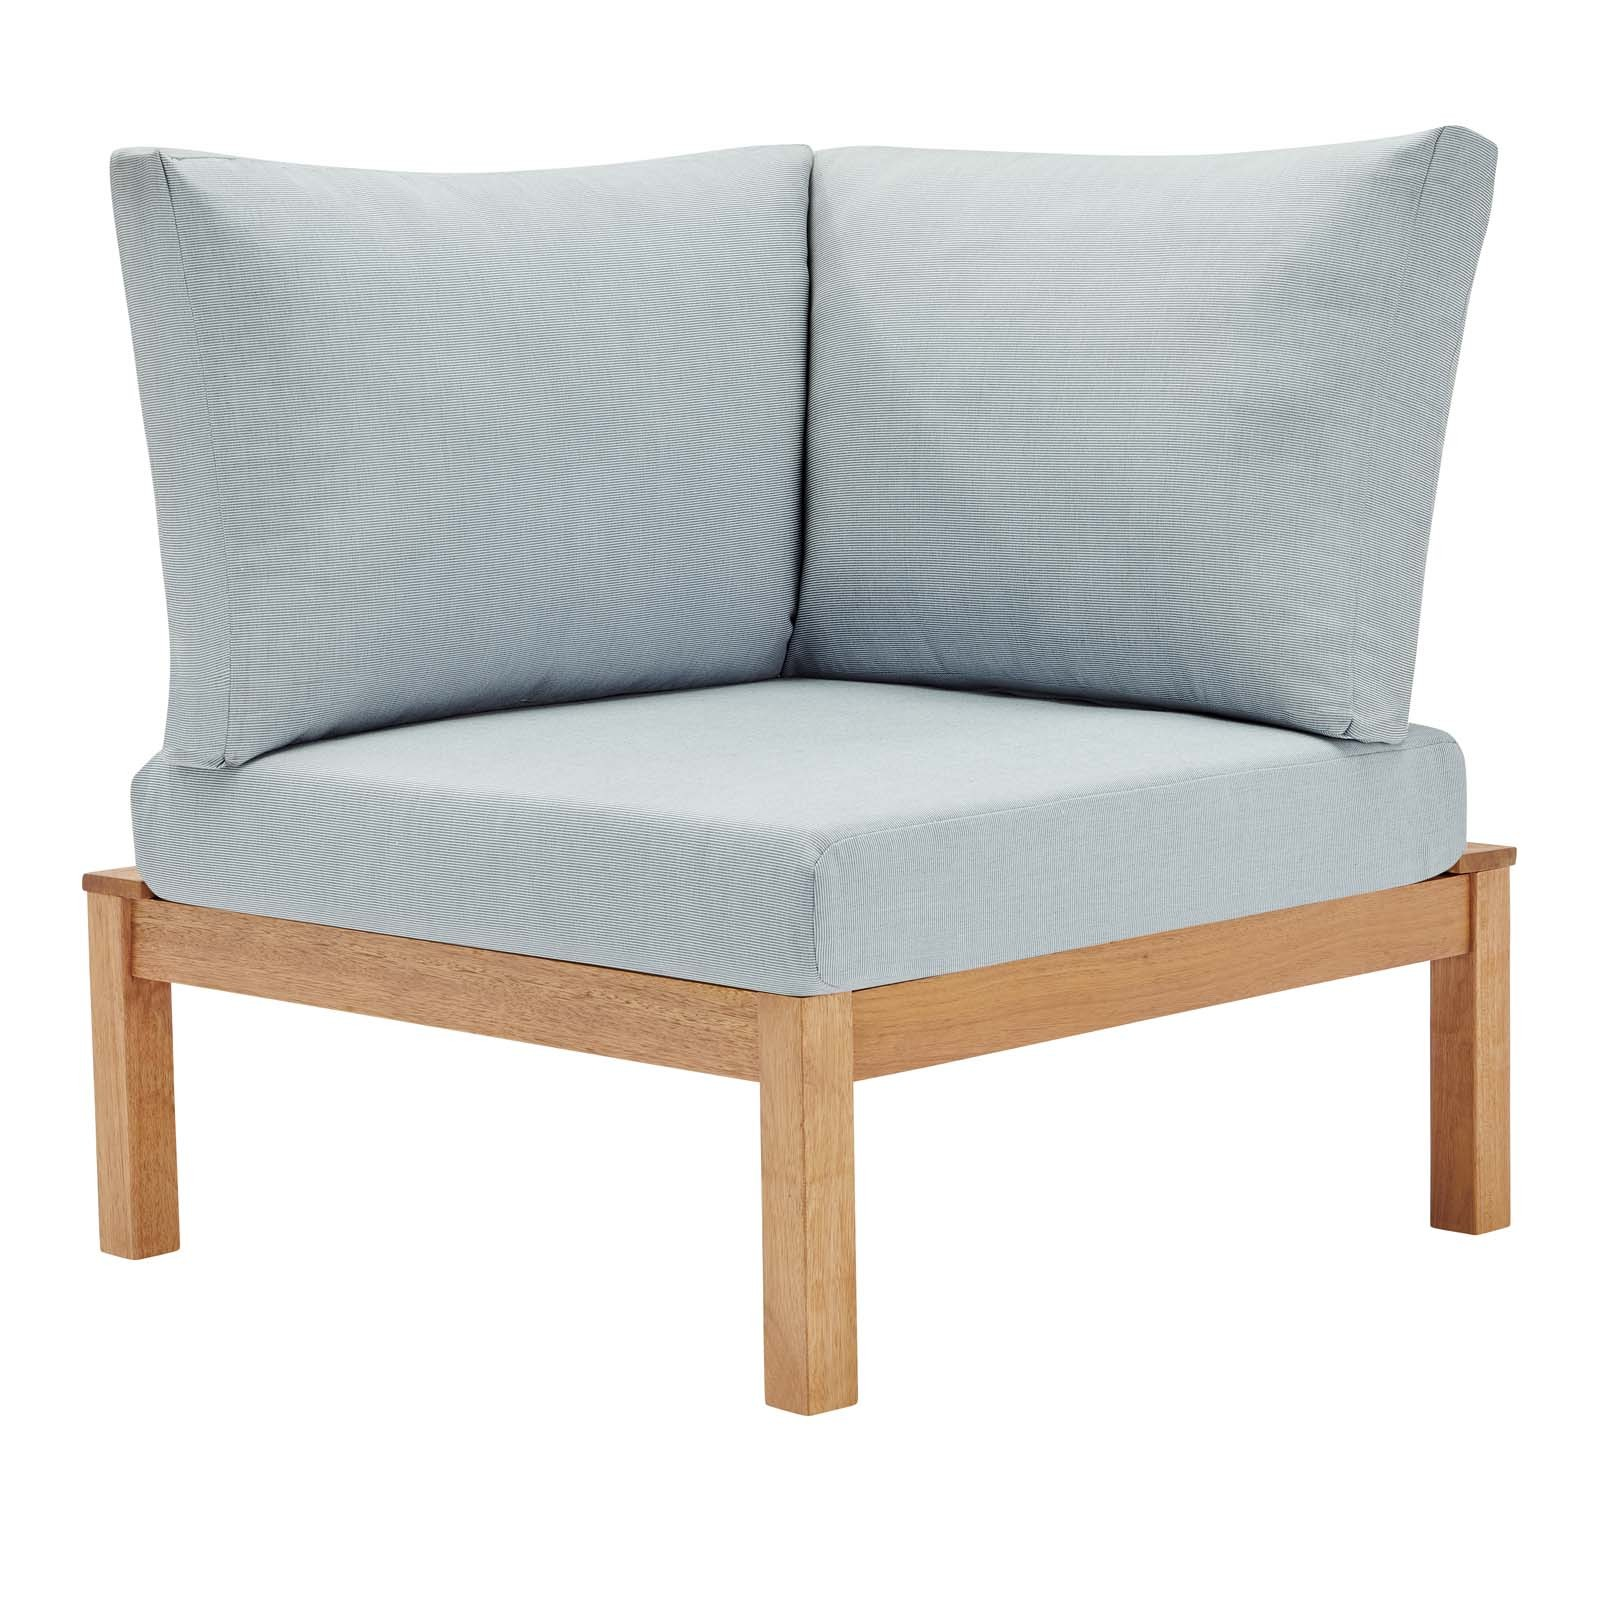 Freeport Karri Wood Sectional Sofa Outdoor Patio Corner Chair in Natural Light Blue